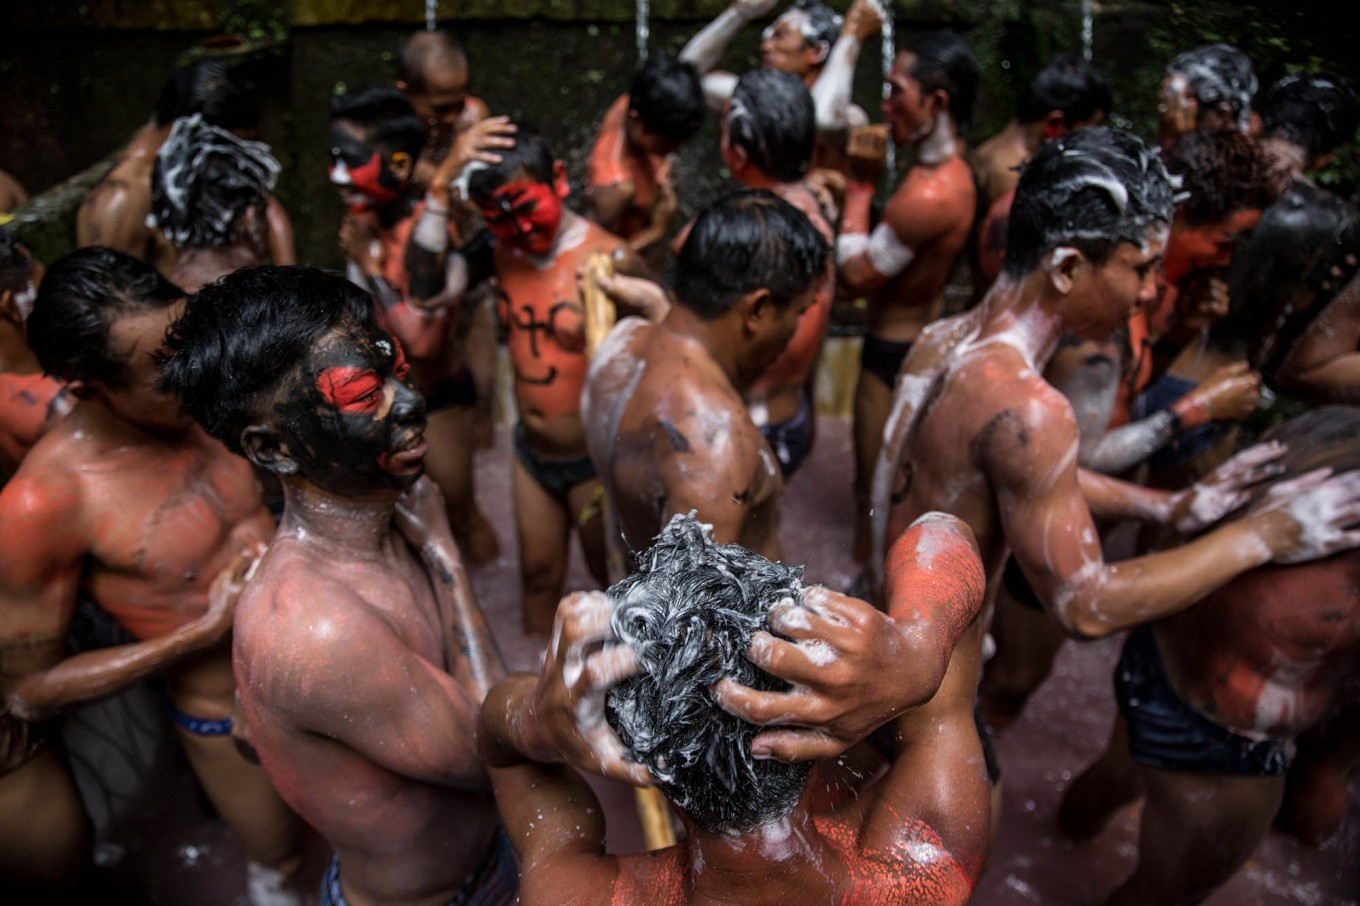 Young people wash their hair and bodies to clean off paint after the Ngarebeg ritual. JP/Agung Parameswara